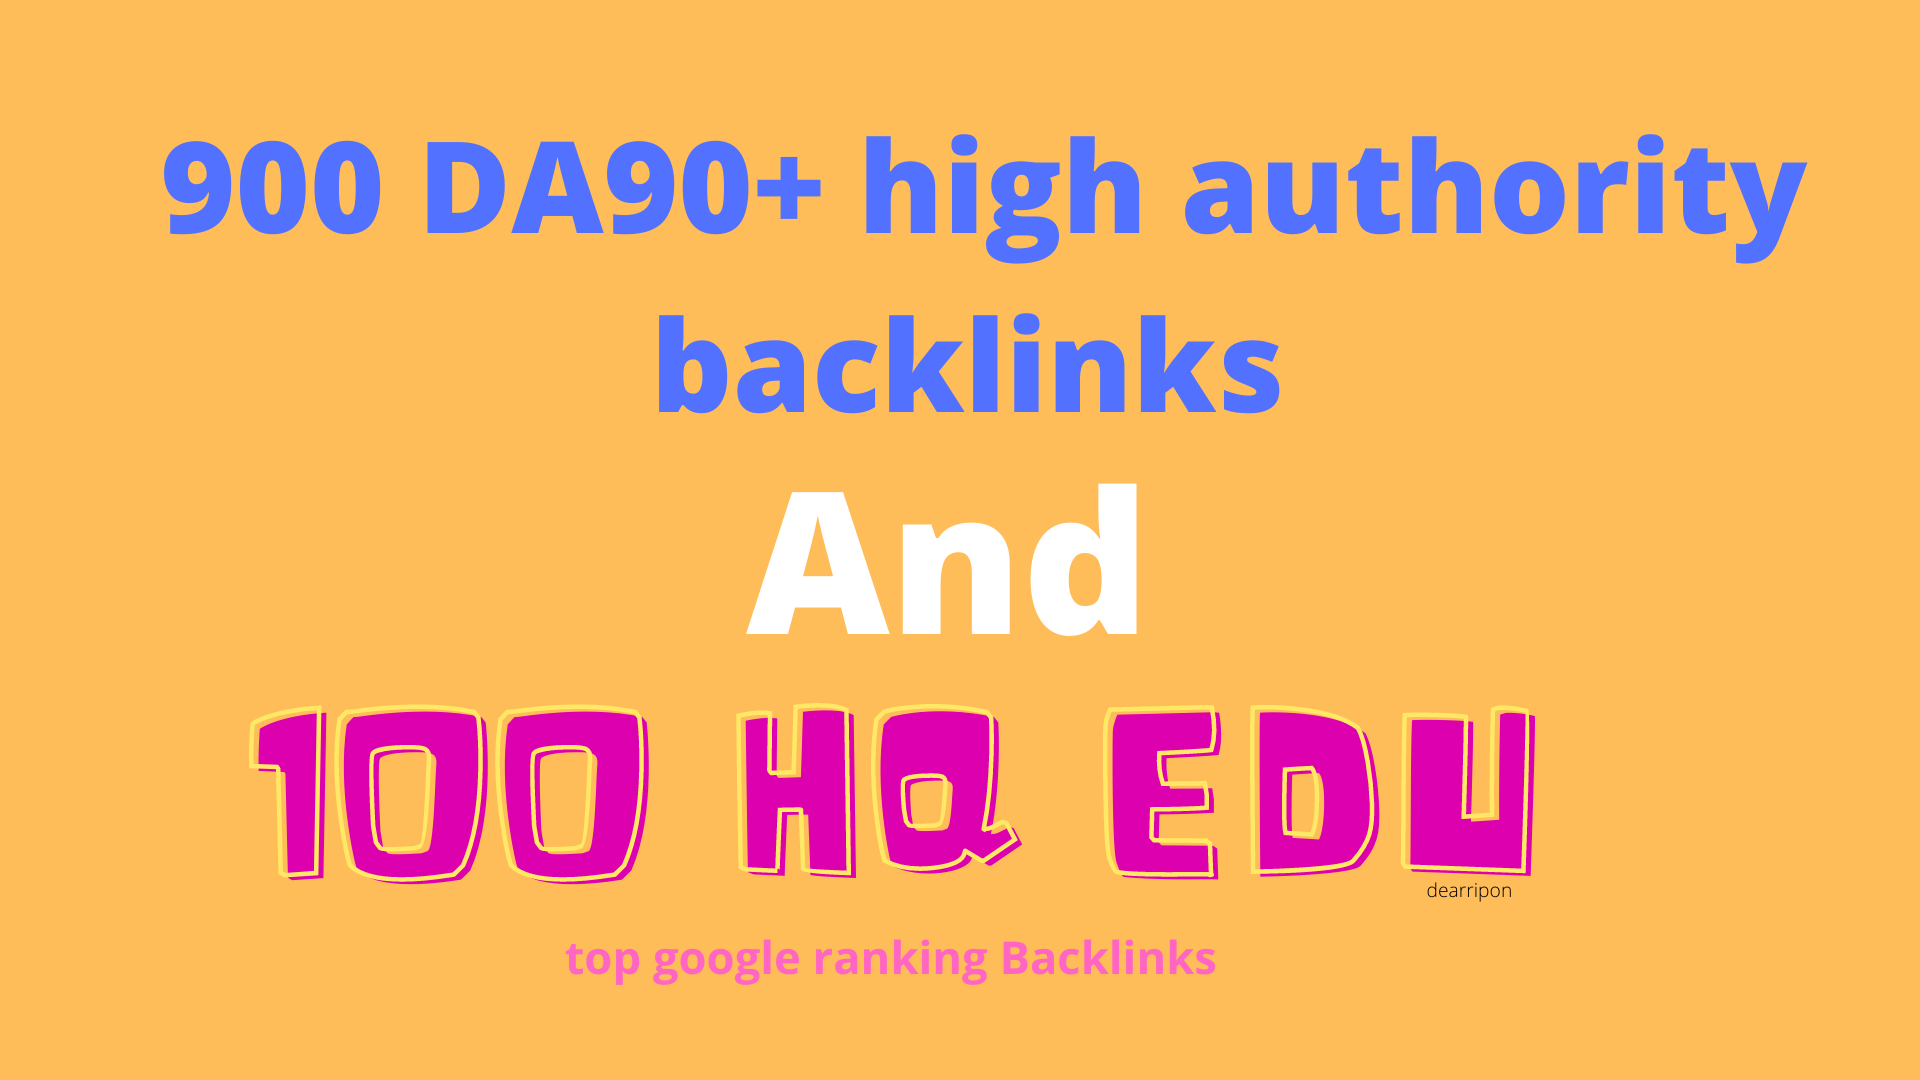 provide high authority 900 DA 90+and 100 Edu Gov exclusive Backlinks fast ranking